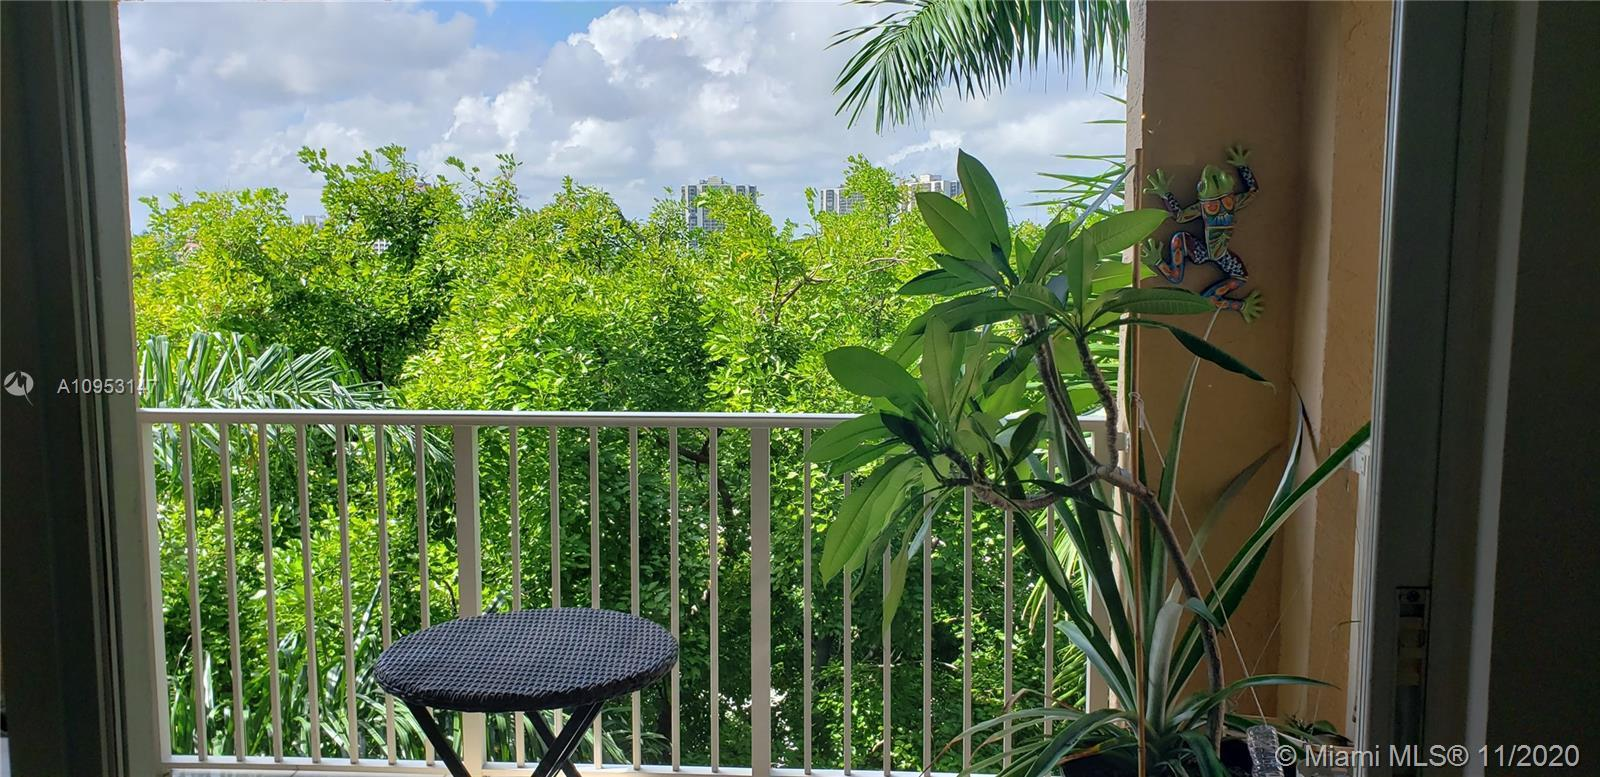 Welcoming and comfortable 2 bedroom / 2 bath apartment in the heart of Aventura. Featuring a split f